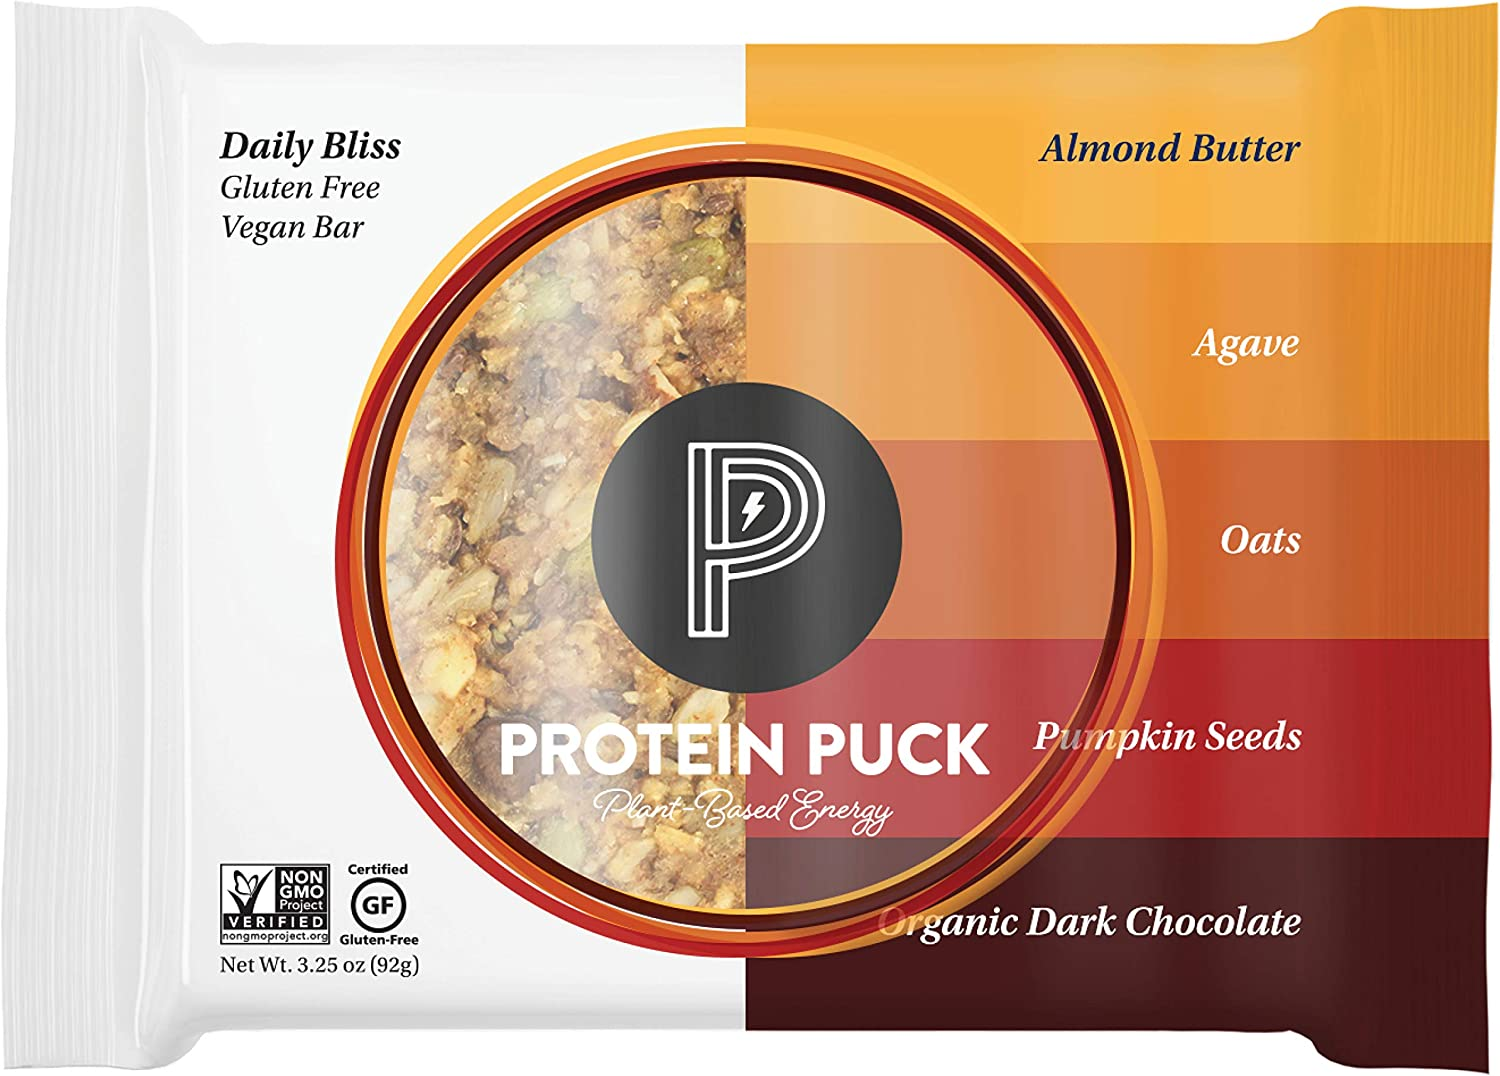 We OFFer at cheap prices Protein Genuine Puck Plant Based Bars Snacks Pr with 15 grams Vegan of